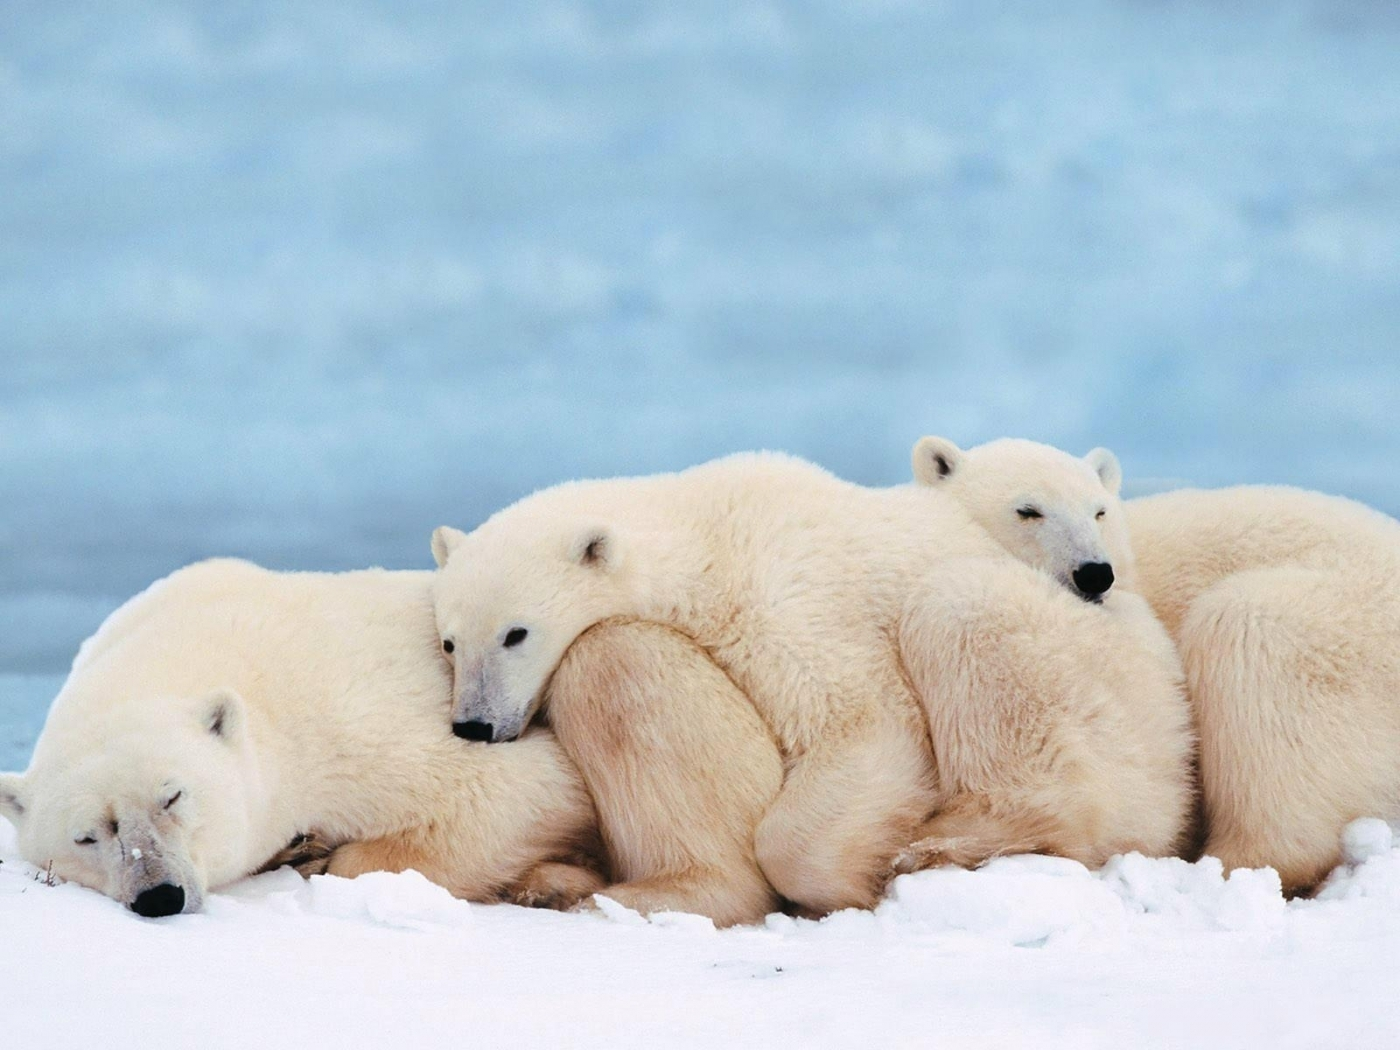 48820 download wallpaper Animals, Bears screensavers and pictures for free